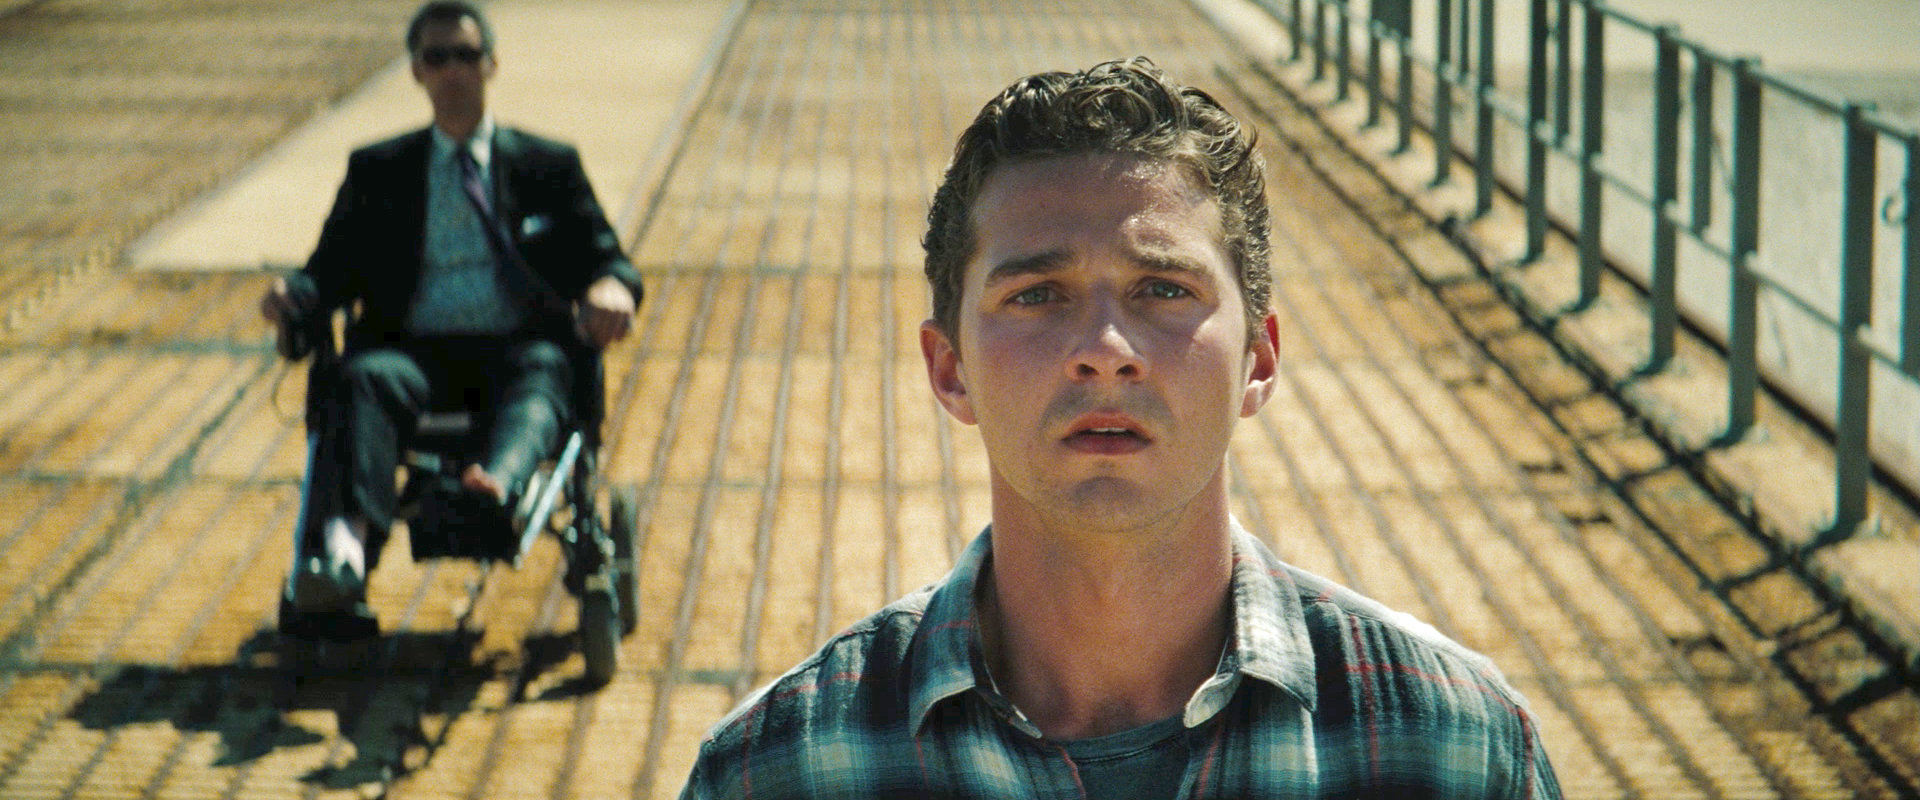 Shia LaBeouf stars as Sam Witwicky in DreamWorks SKG's Transformers: Dark of the Moon (2011)